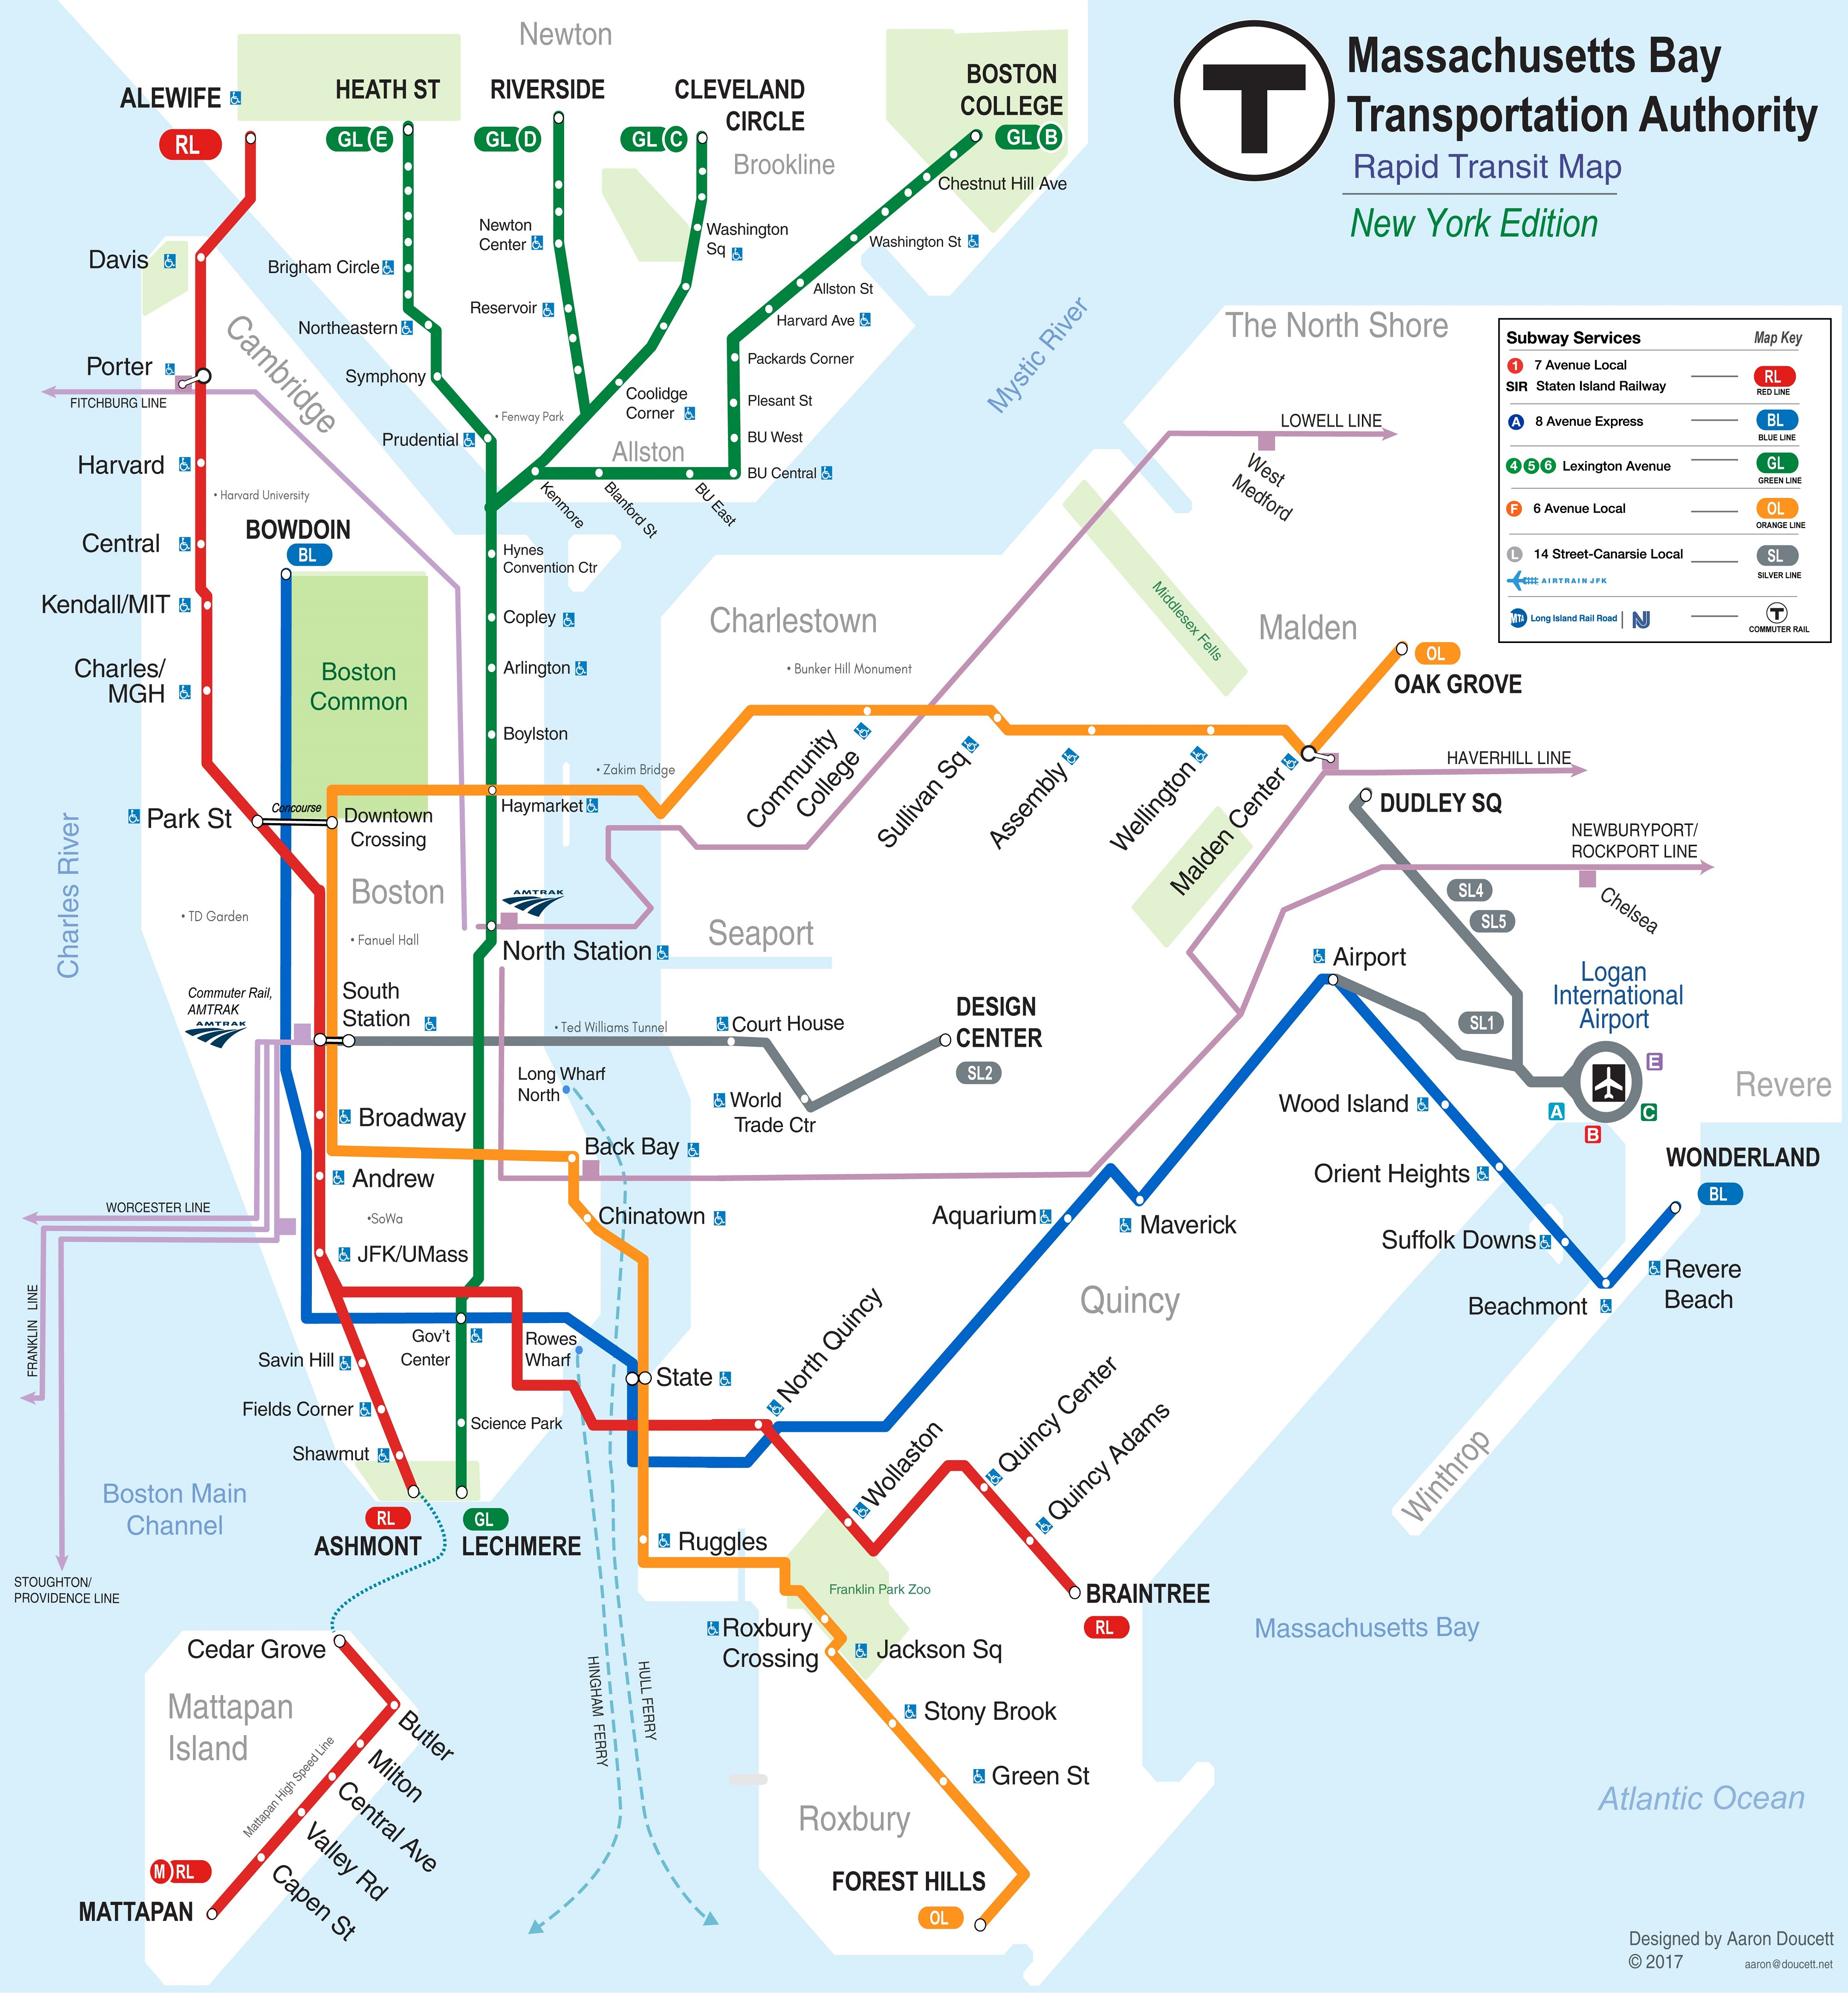 Nyc Subway Map Express Trains.Nyc Subway Map Re Imagined As Boston Oc 4000x4319 Mapporn